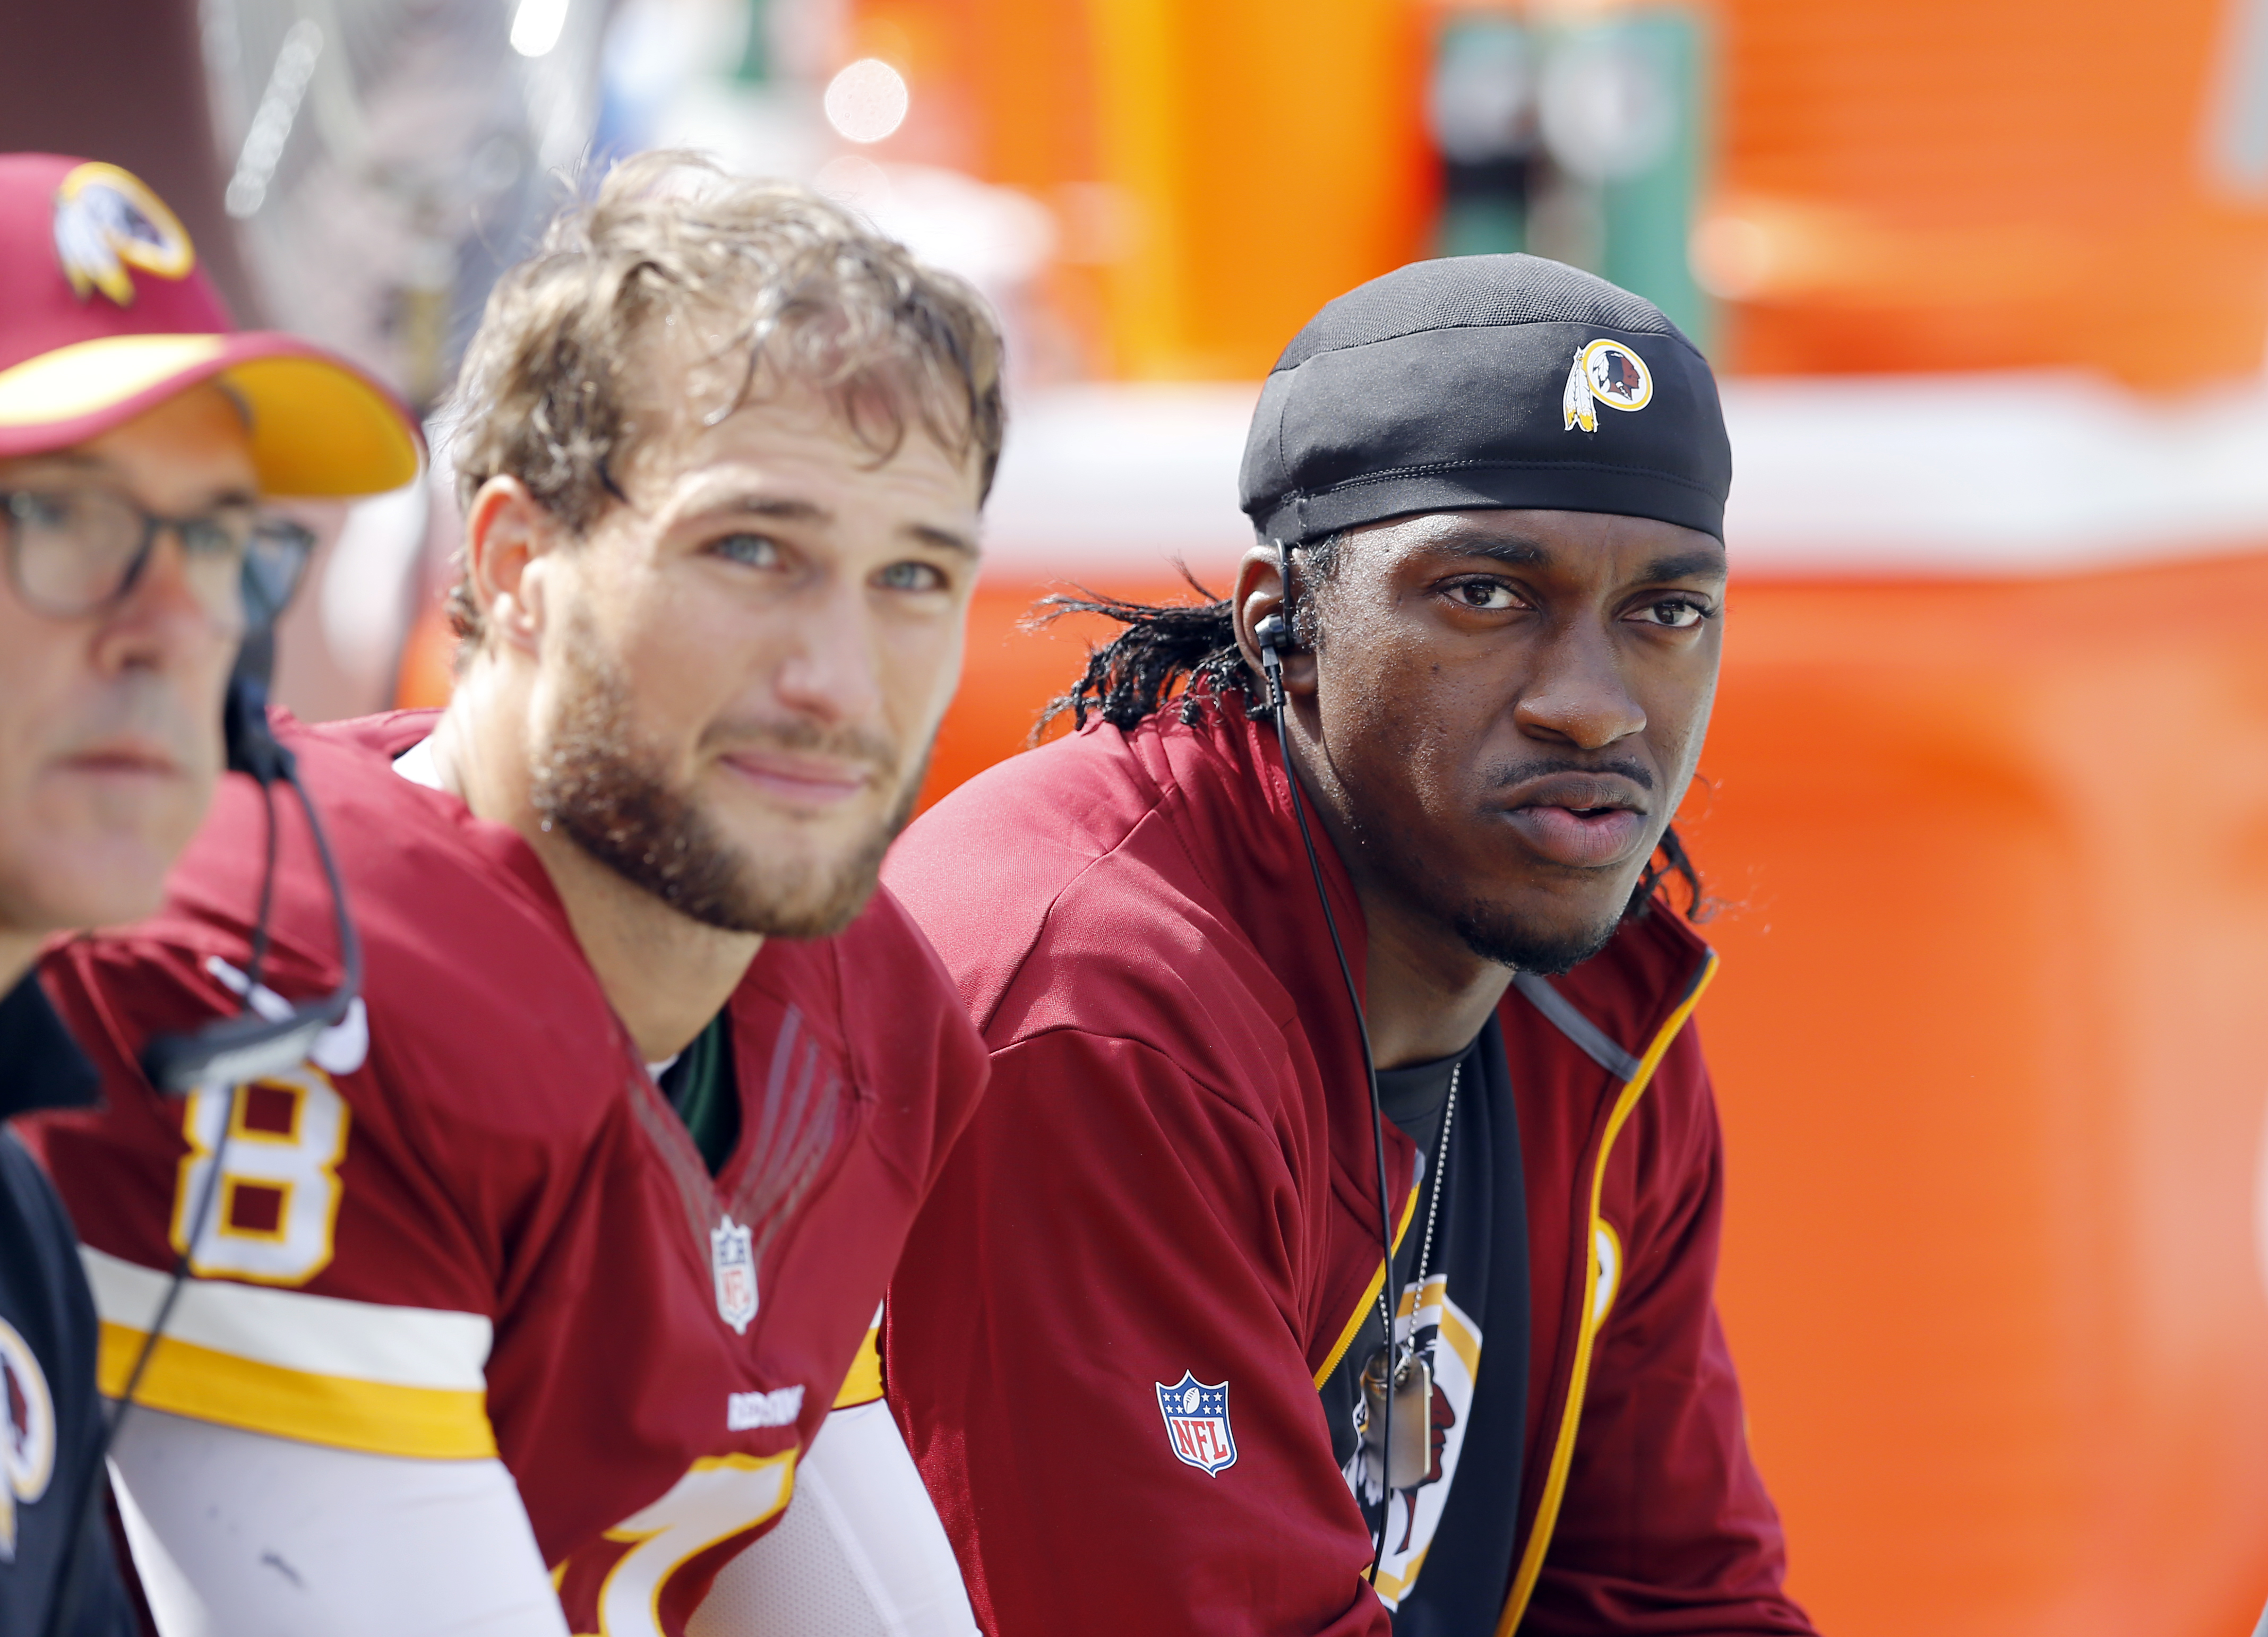 Washington Redskins quarterback Kirk Cousins (8) and quarterback Robert Griffin III, right, sit on the bench during the second half of an NFL football game against the Miami Dolphins, Sunday, Sept. 13, 2015, in Landover, Md. (AP Photo/Patrick Semansky)